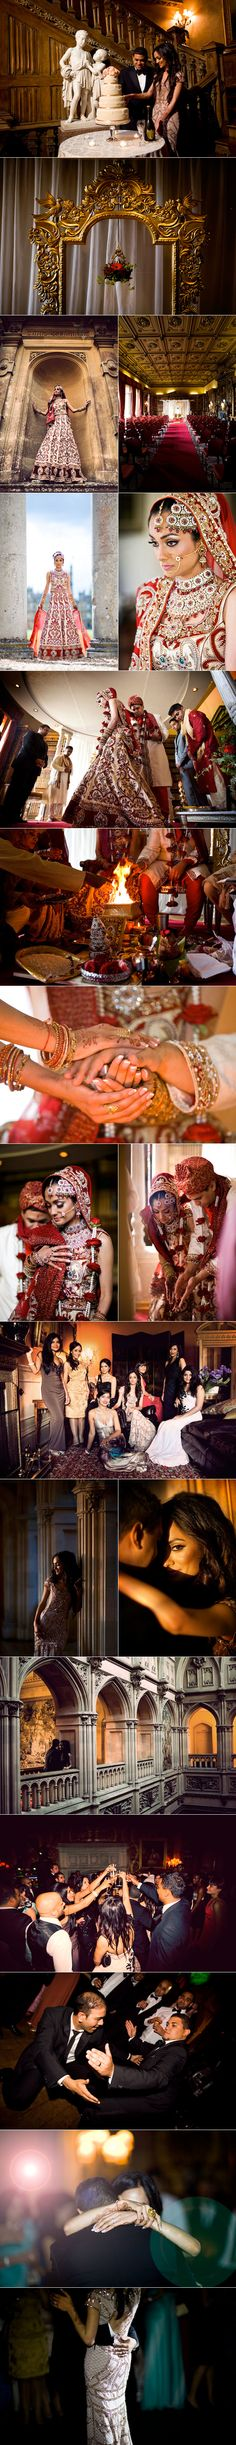 Beautiful fusion wedding incorporating Hindu wedding traditions with a modern Western wedding reception. Love the bride's champagne gown and Hindu lengha. Hindu Wedding Ceremony, Desi Wedding, Wedding Poses, Wedding Ideas, Big Fat Indian Wedding, South Asian Wedding, Indian Bridal, Party Photography, Indian Wedding Photography